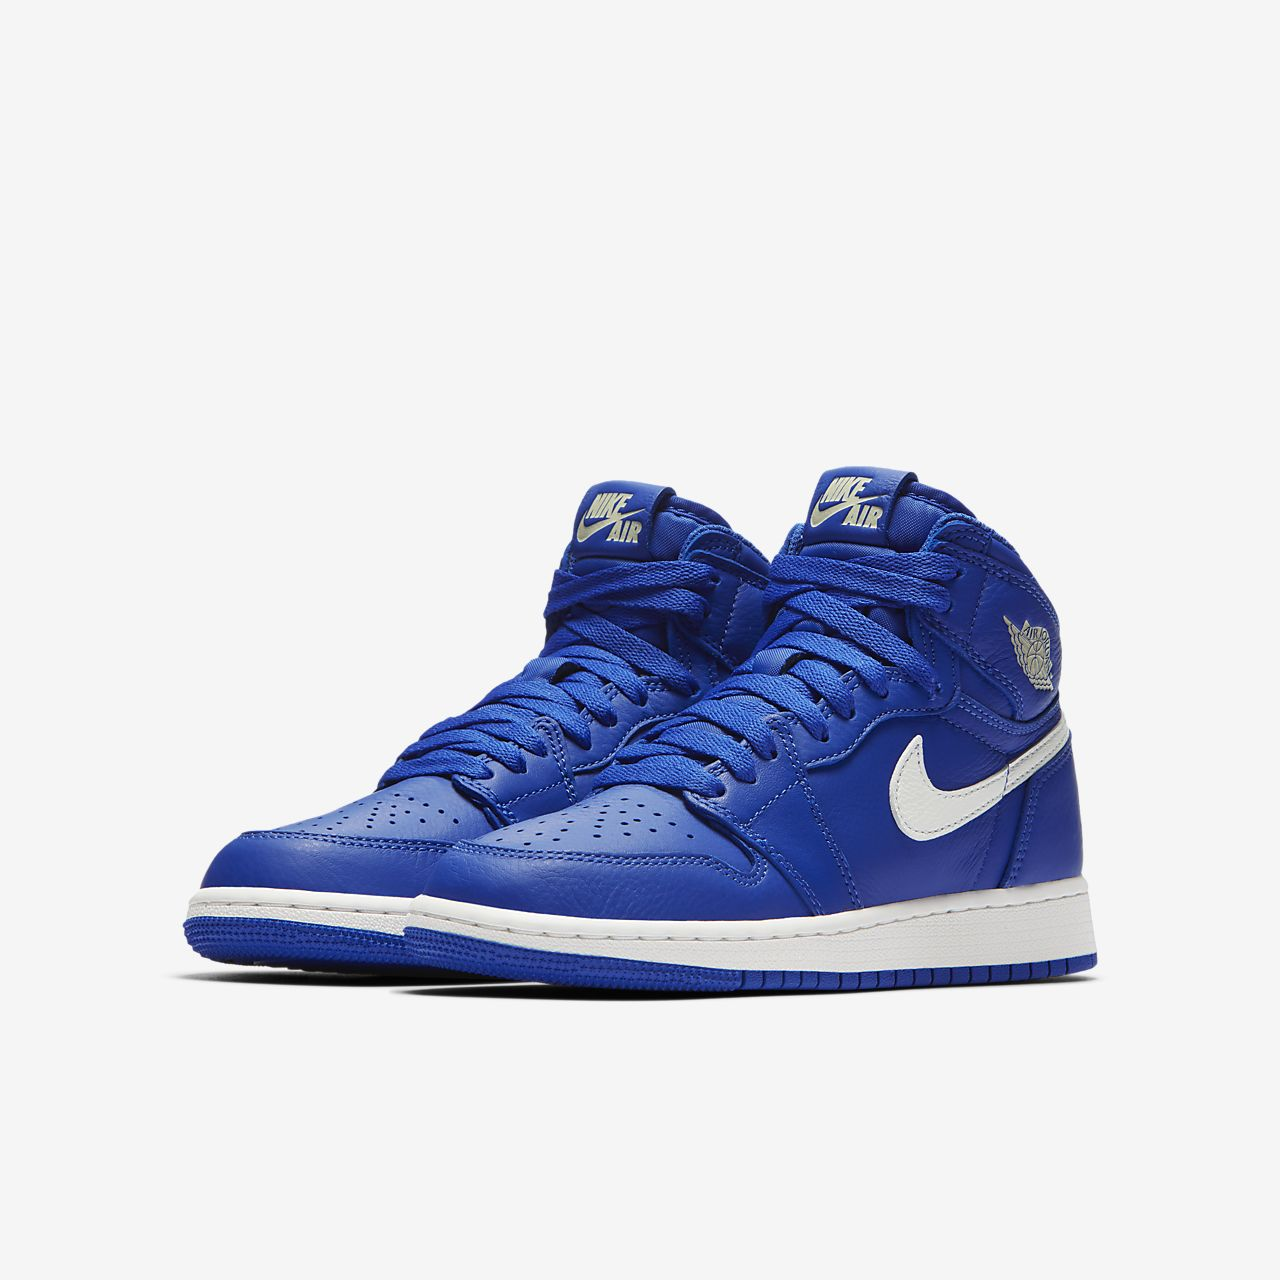 uk availability b8856 a0e12 ... Air Jordan 1 Retro High OG Boys  Shoe